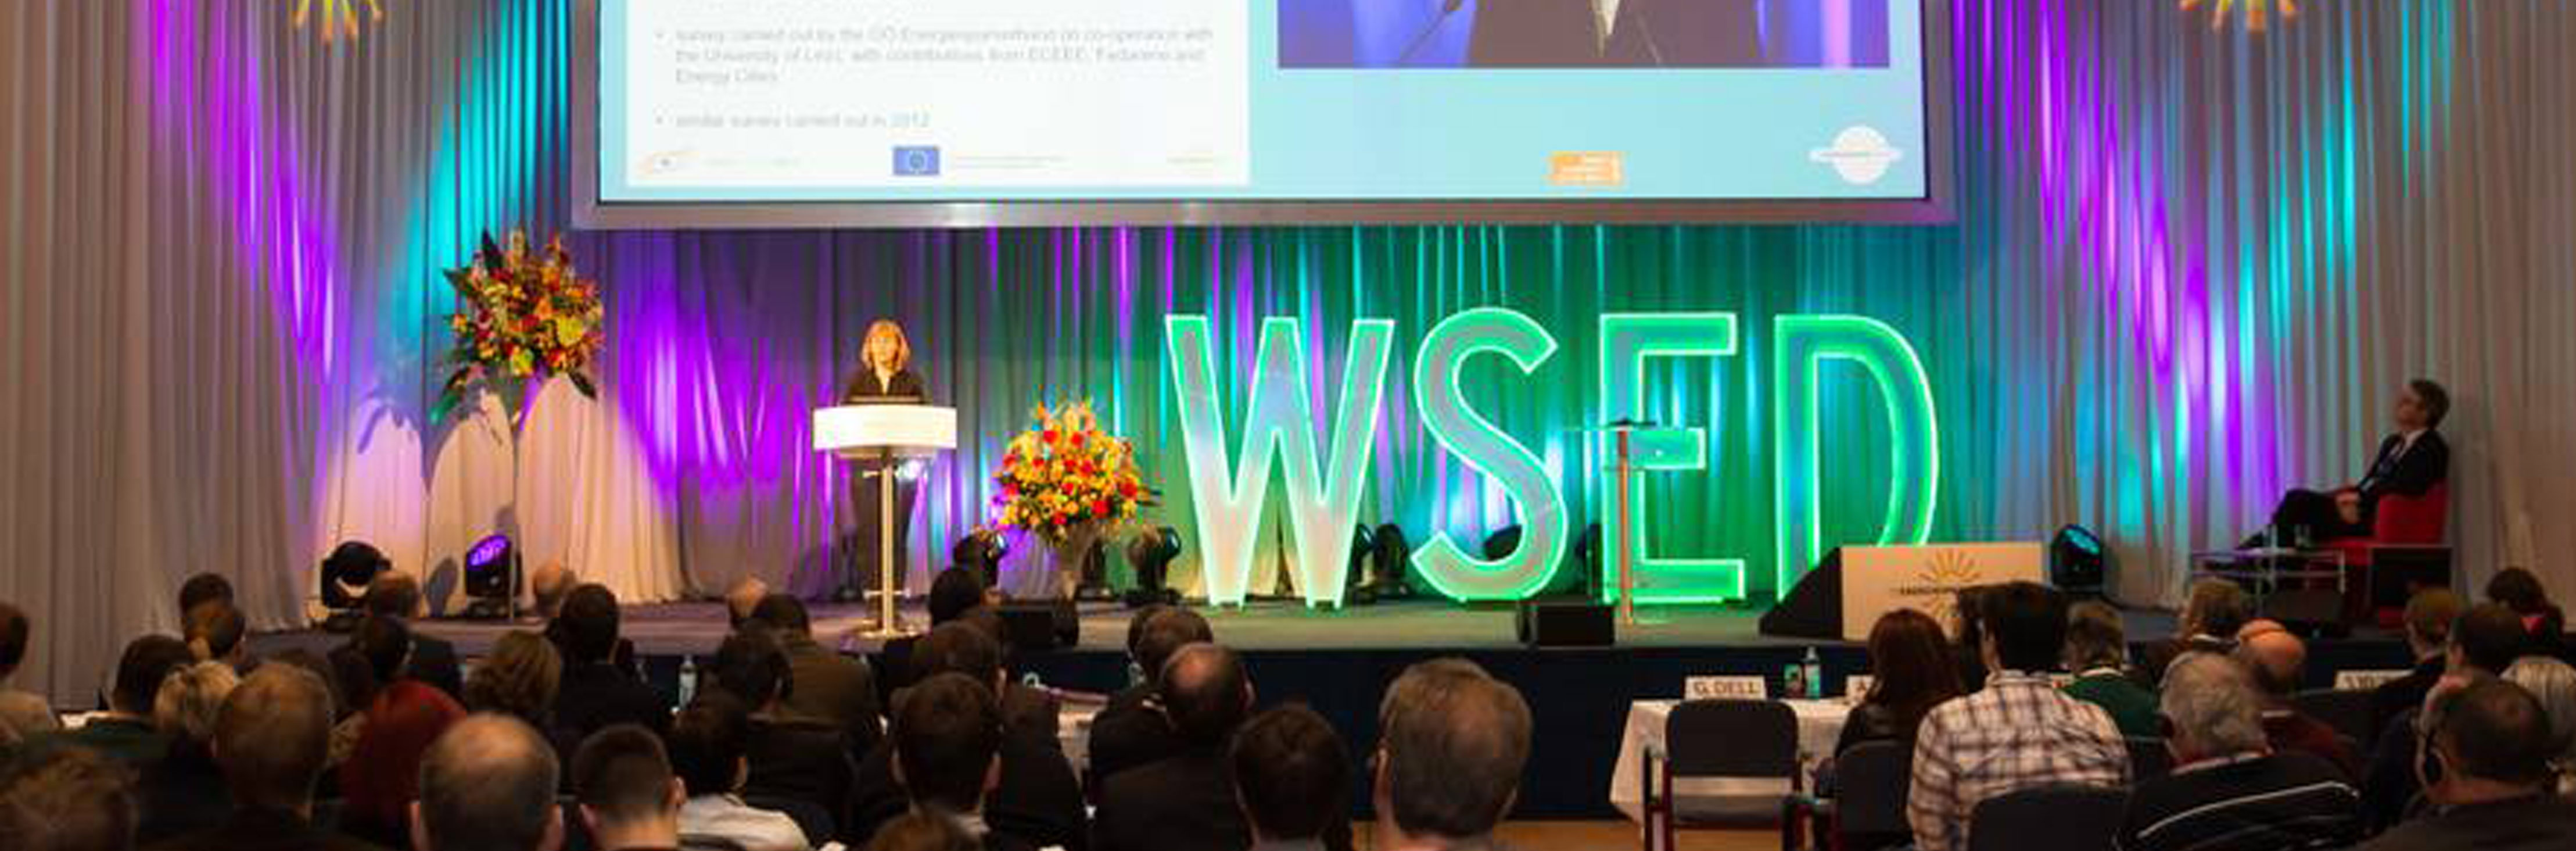 ictfootprinteu-WSED-World-Sustainable-Energy-Days-2017